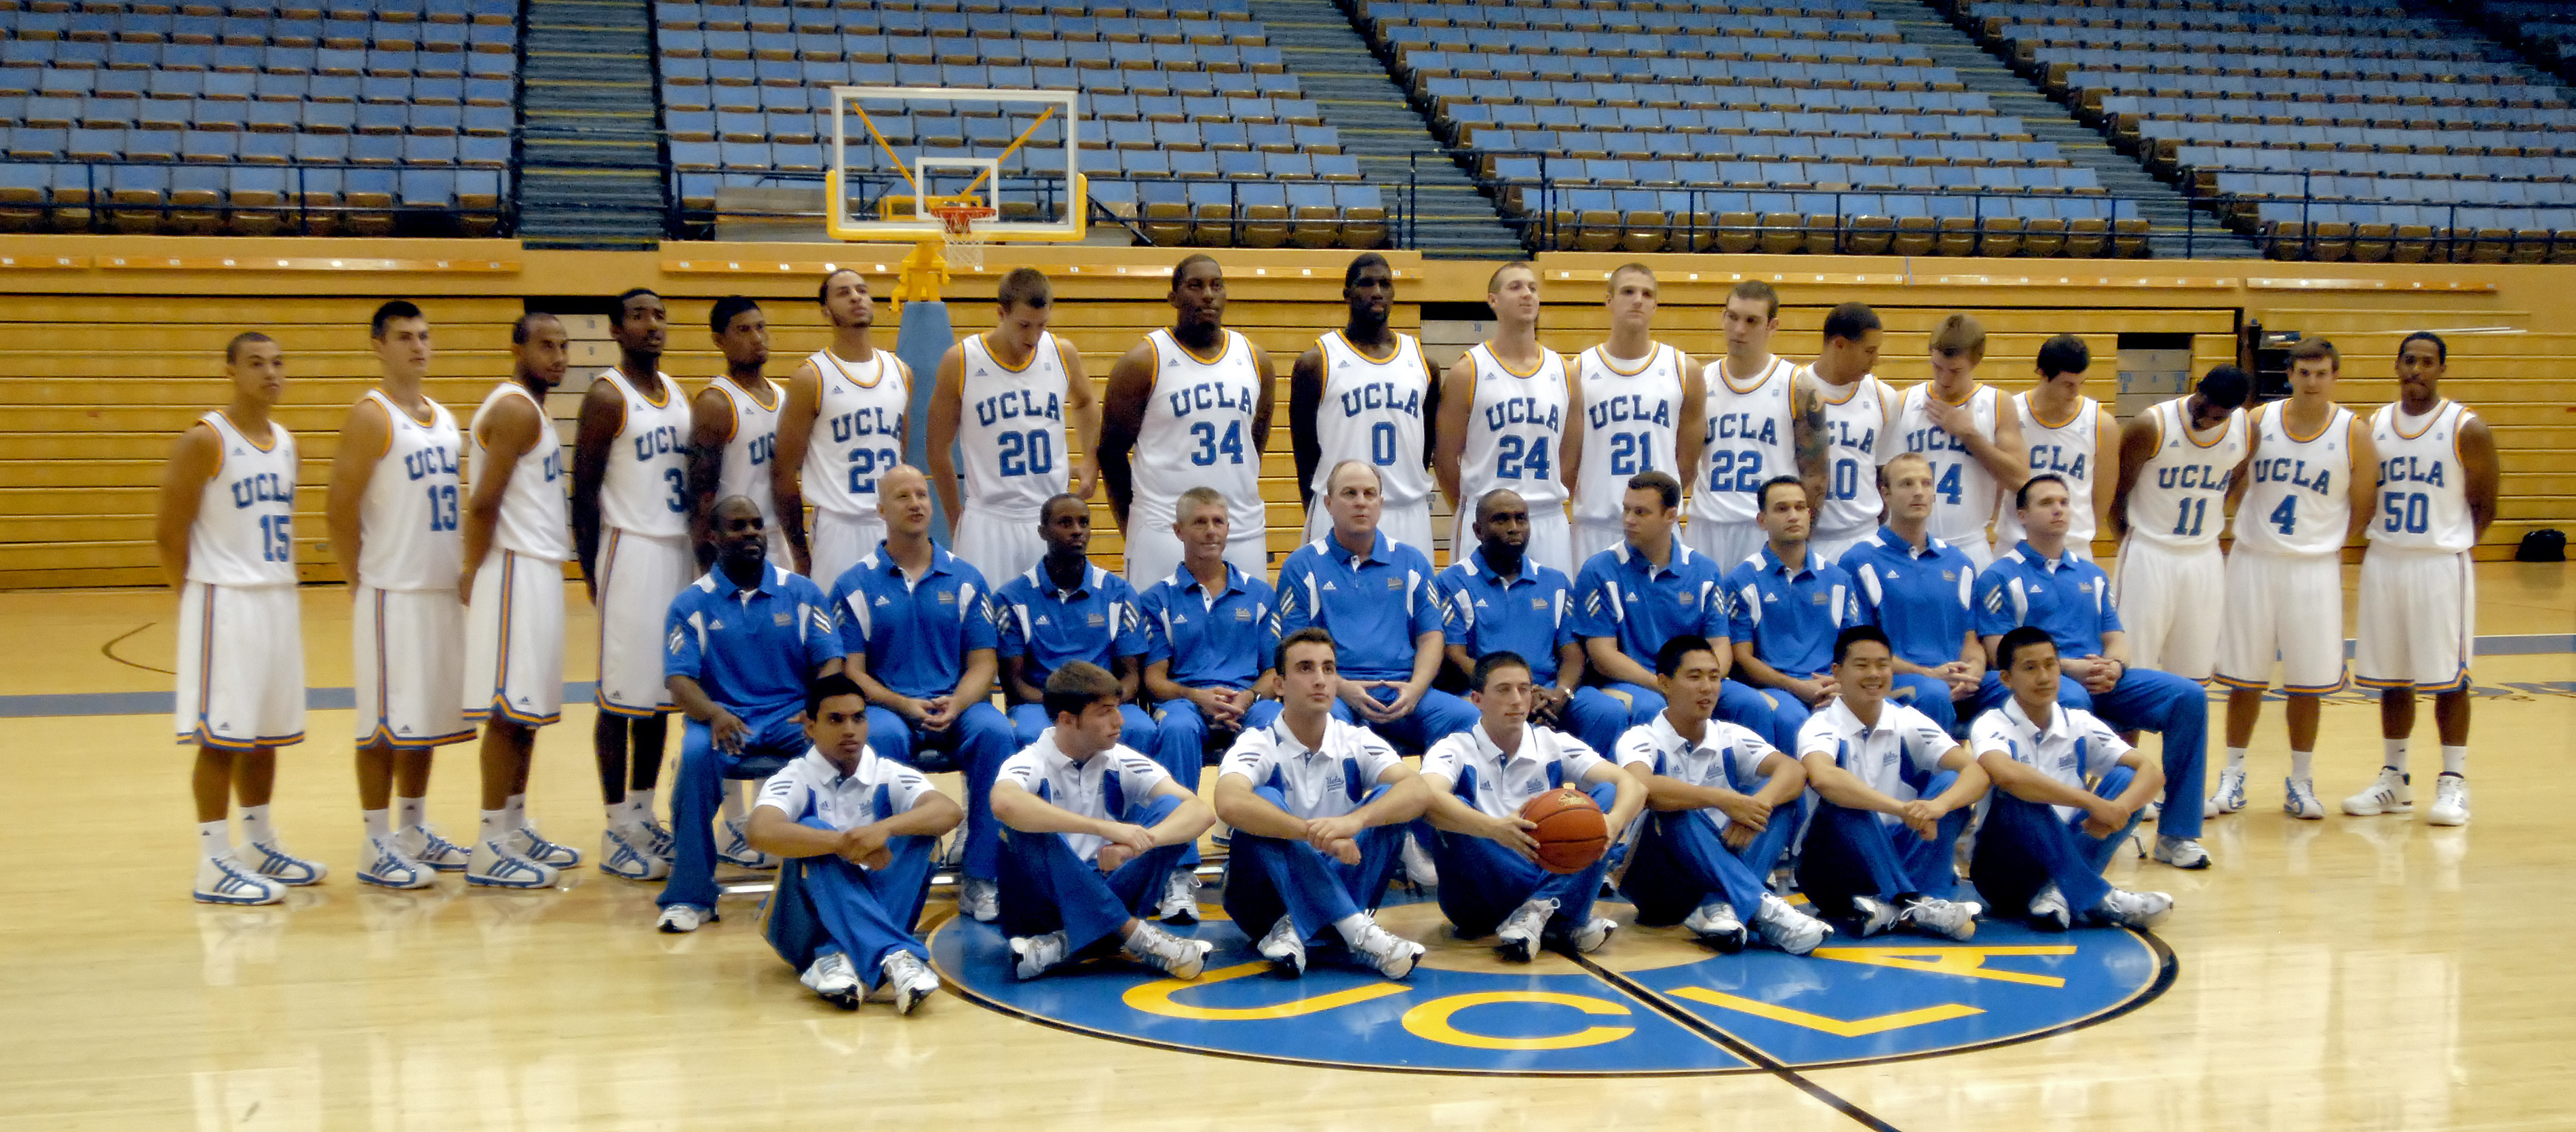 Res: 3797x1669, Bruins basketball focuses on a season for redemption | Daily Bruin